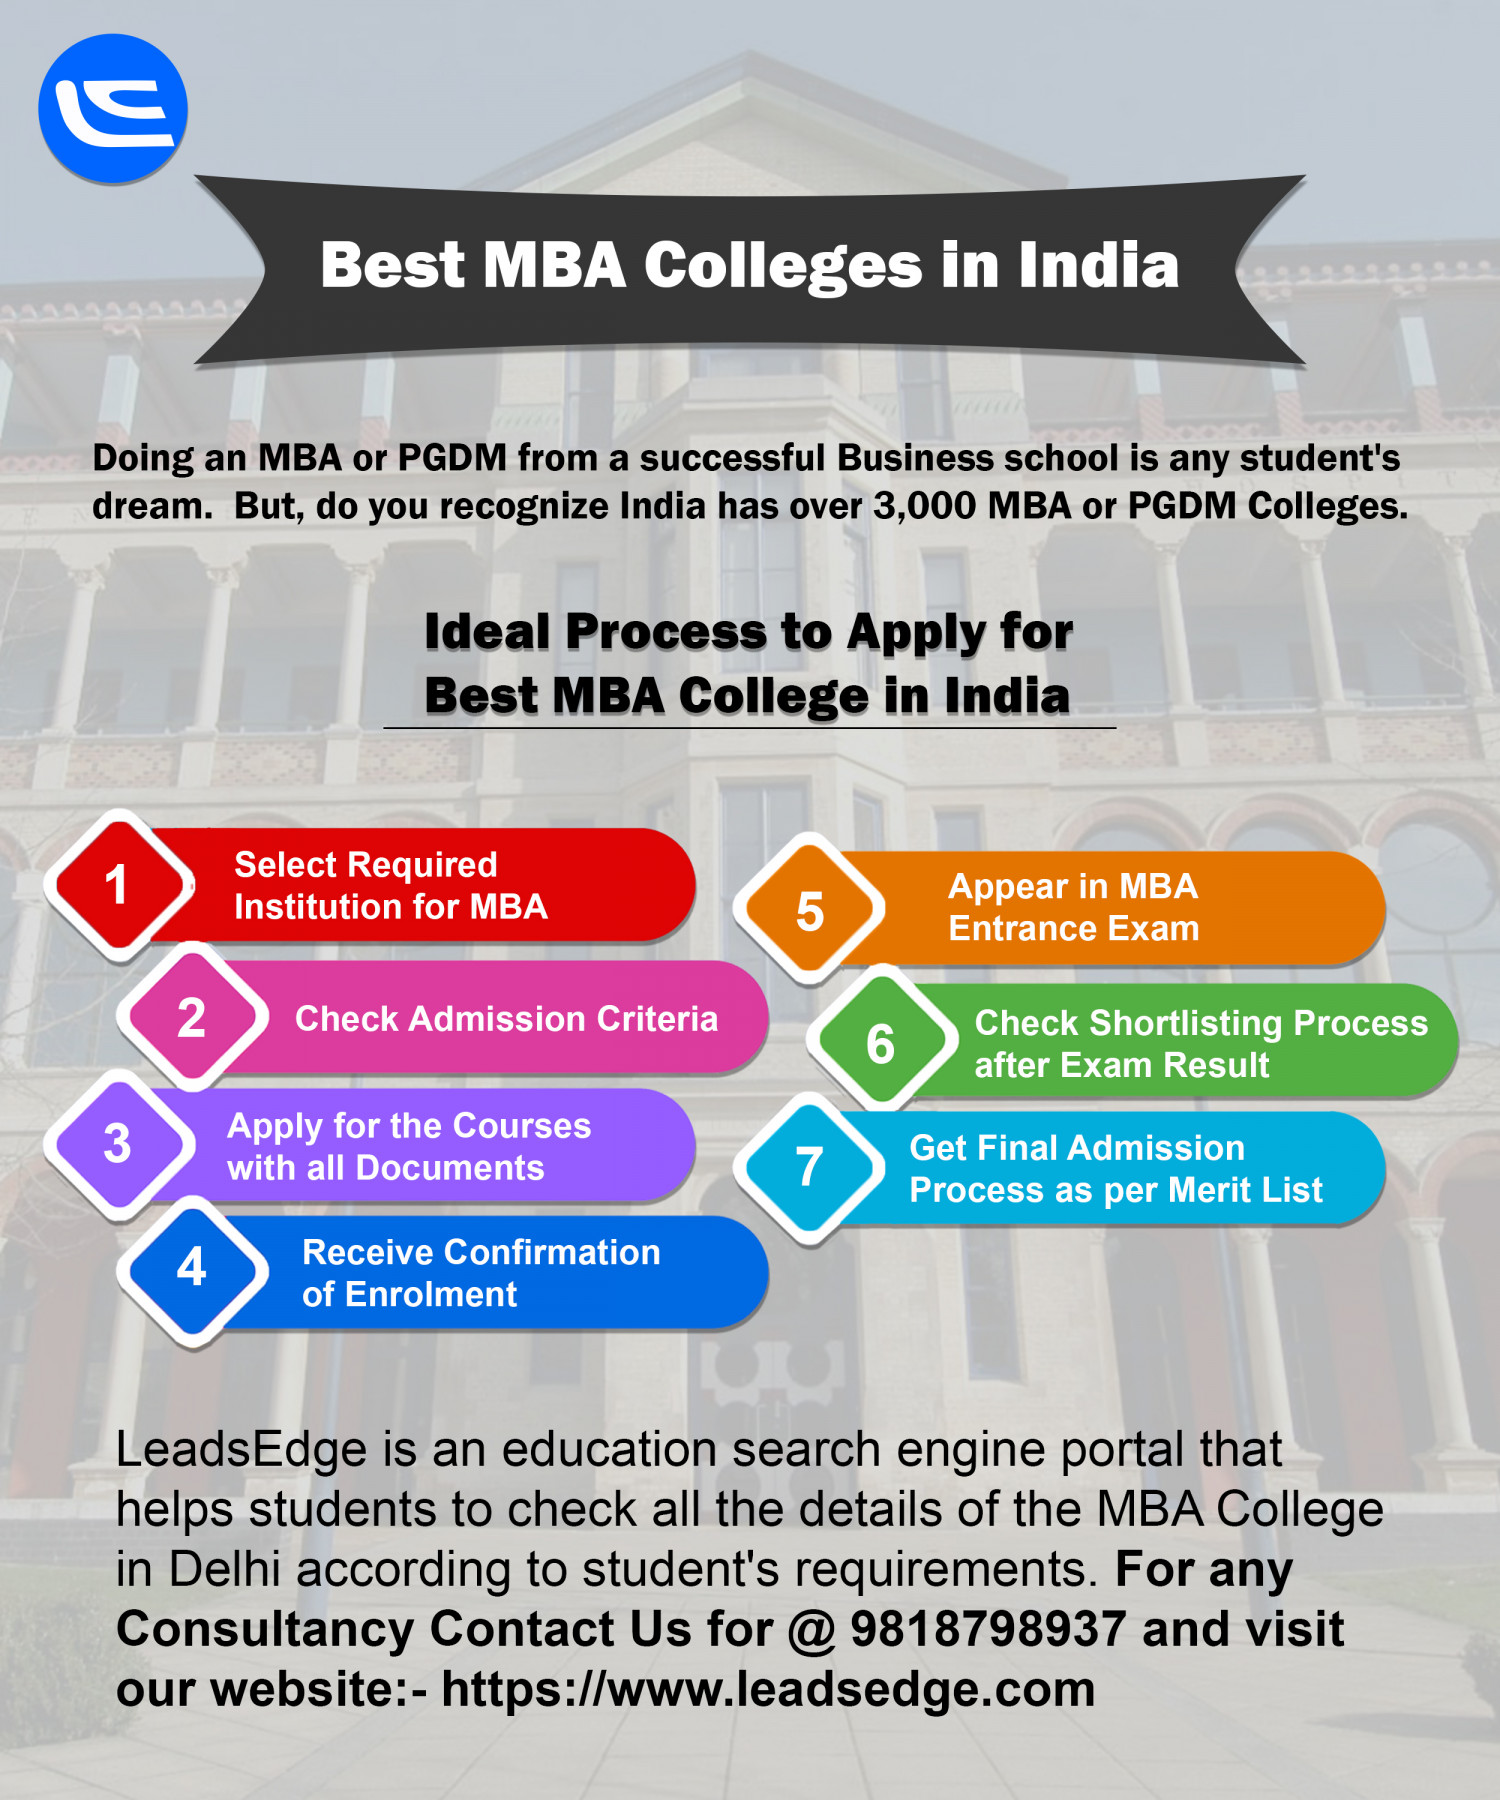 Find the Best MBA Colleges in India Infographic